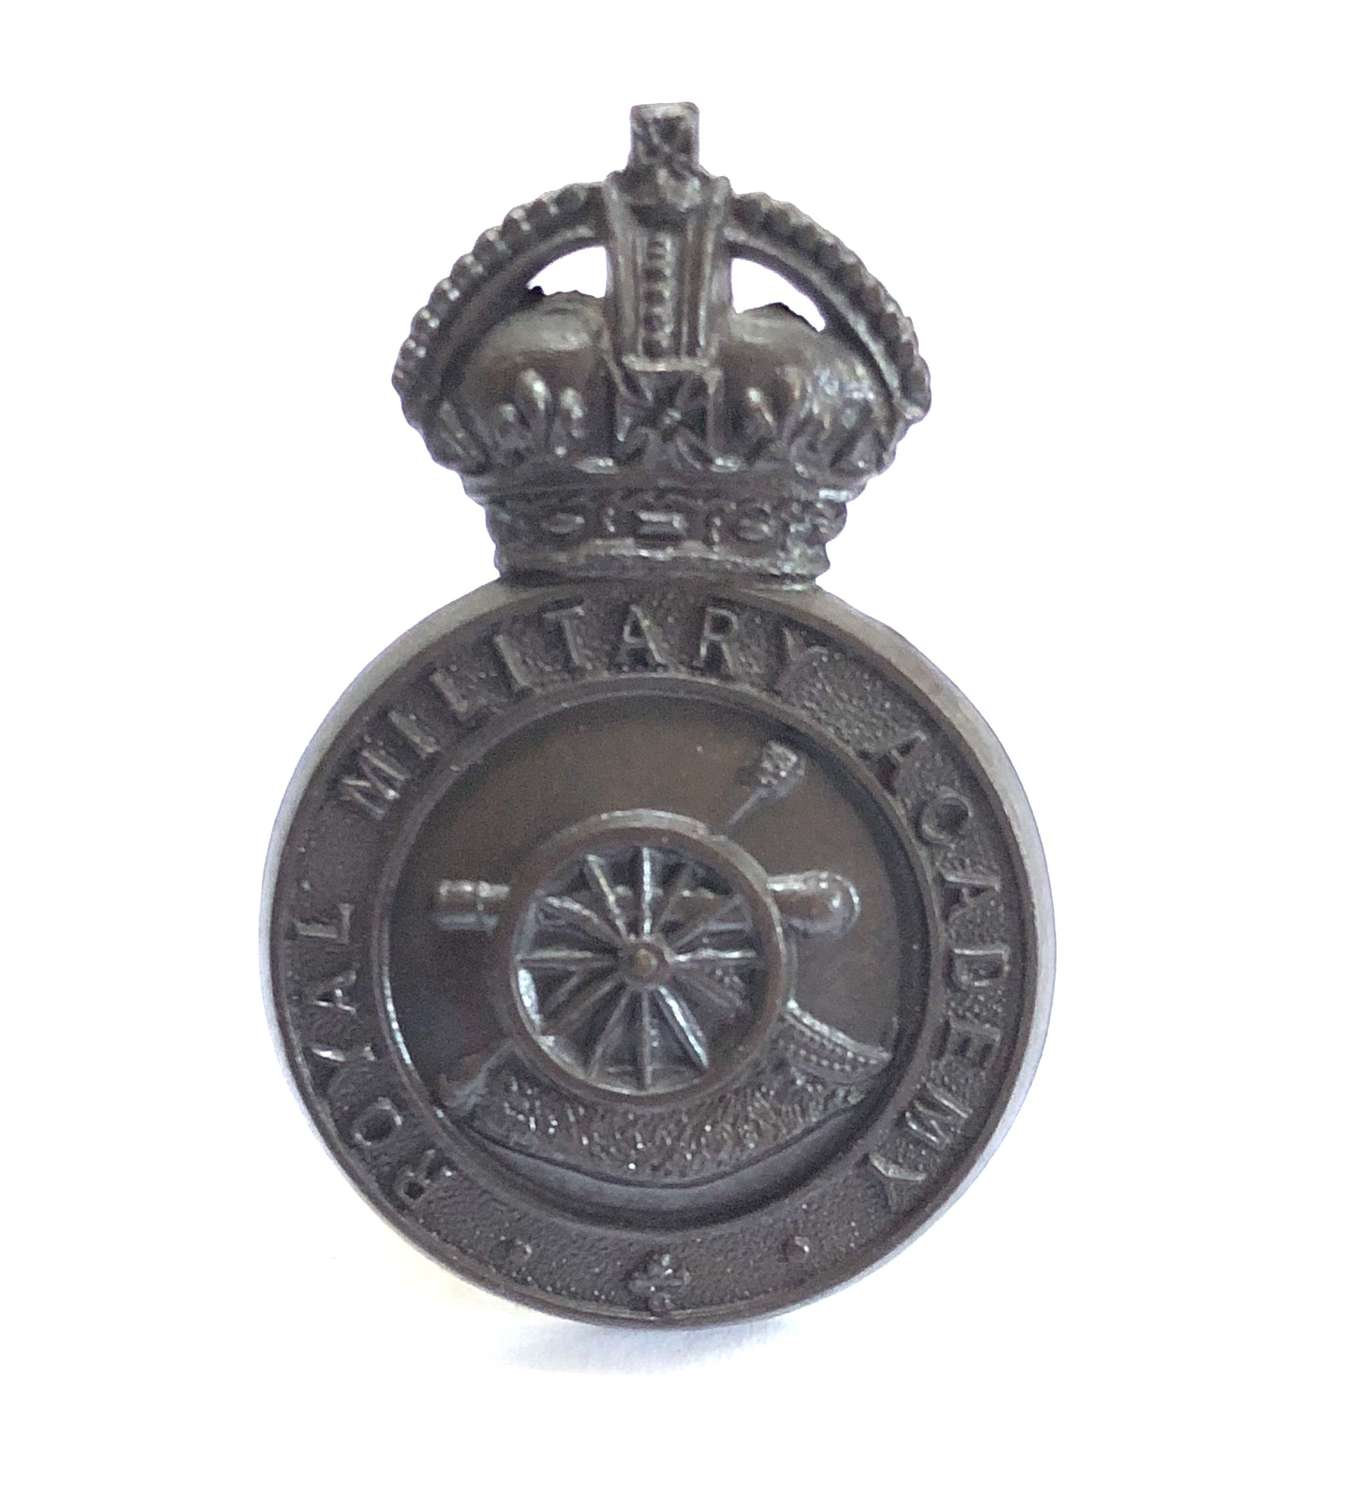 Royal Military Academy, Woolwich post 1902 OSD cap badge